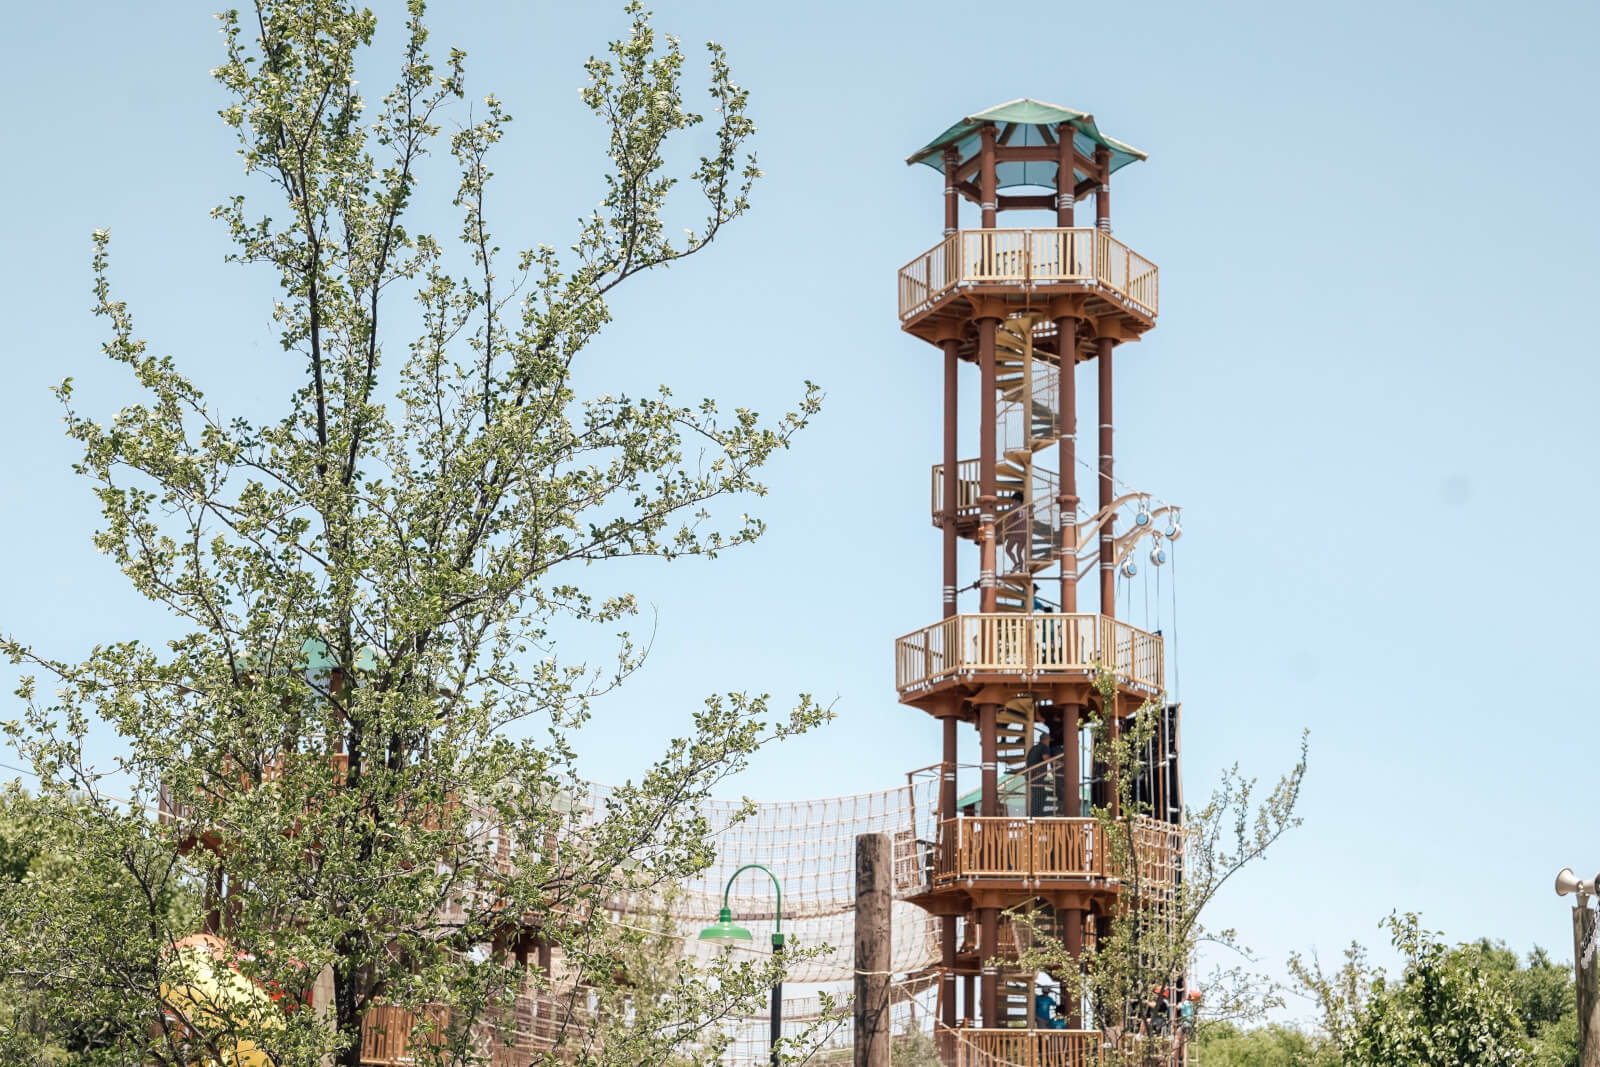 Destination Spotlight Adventure Park Visit Lubbock